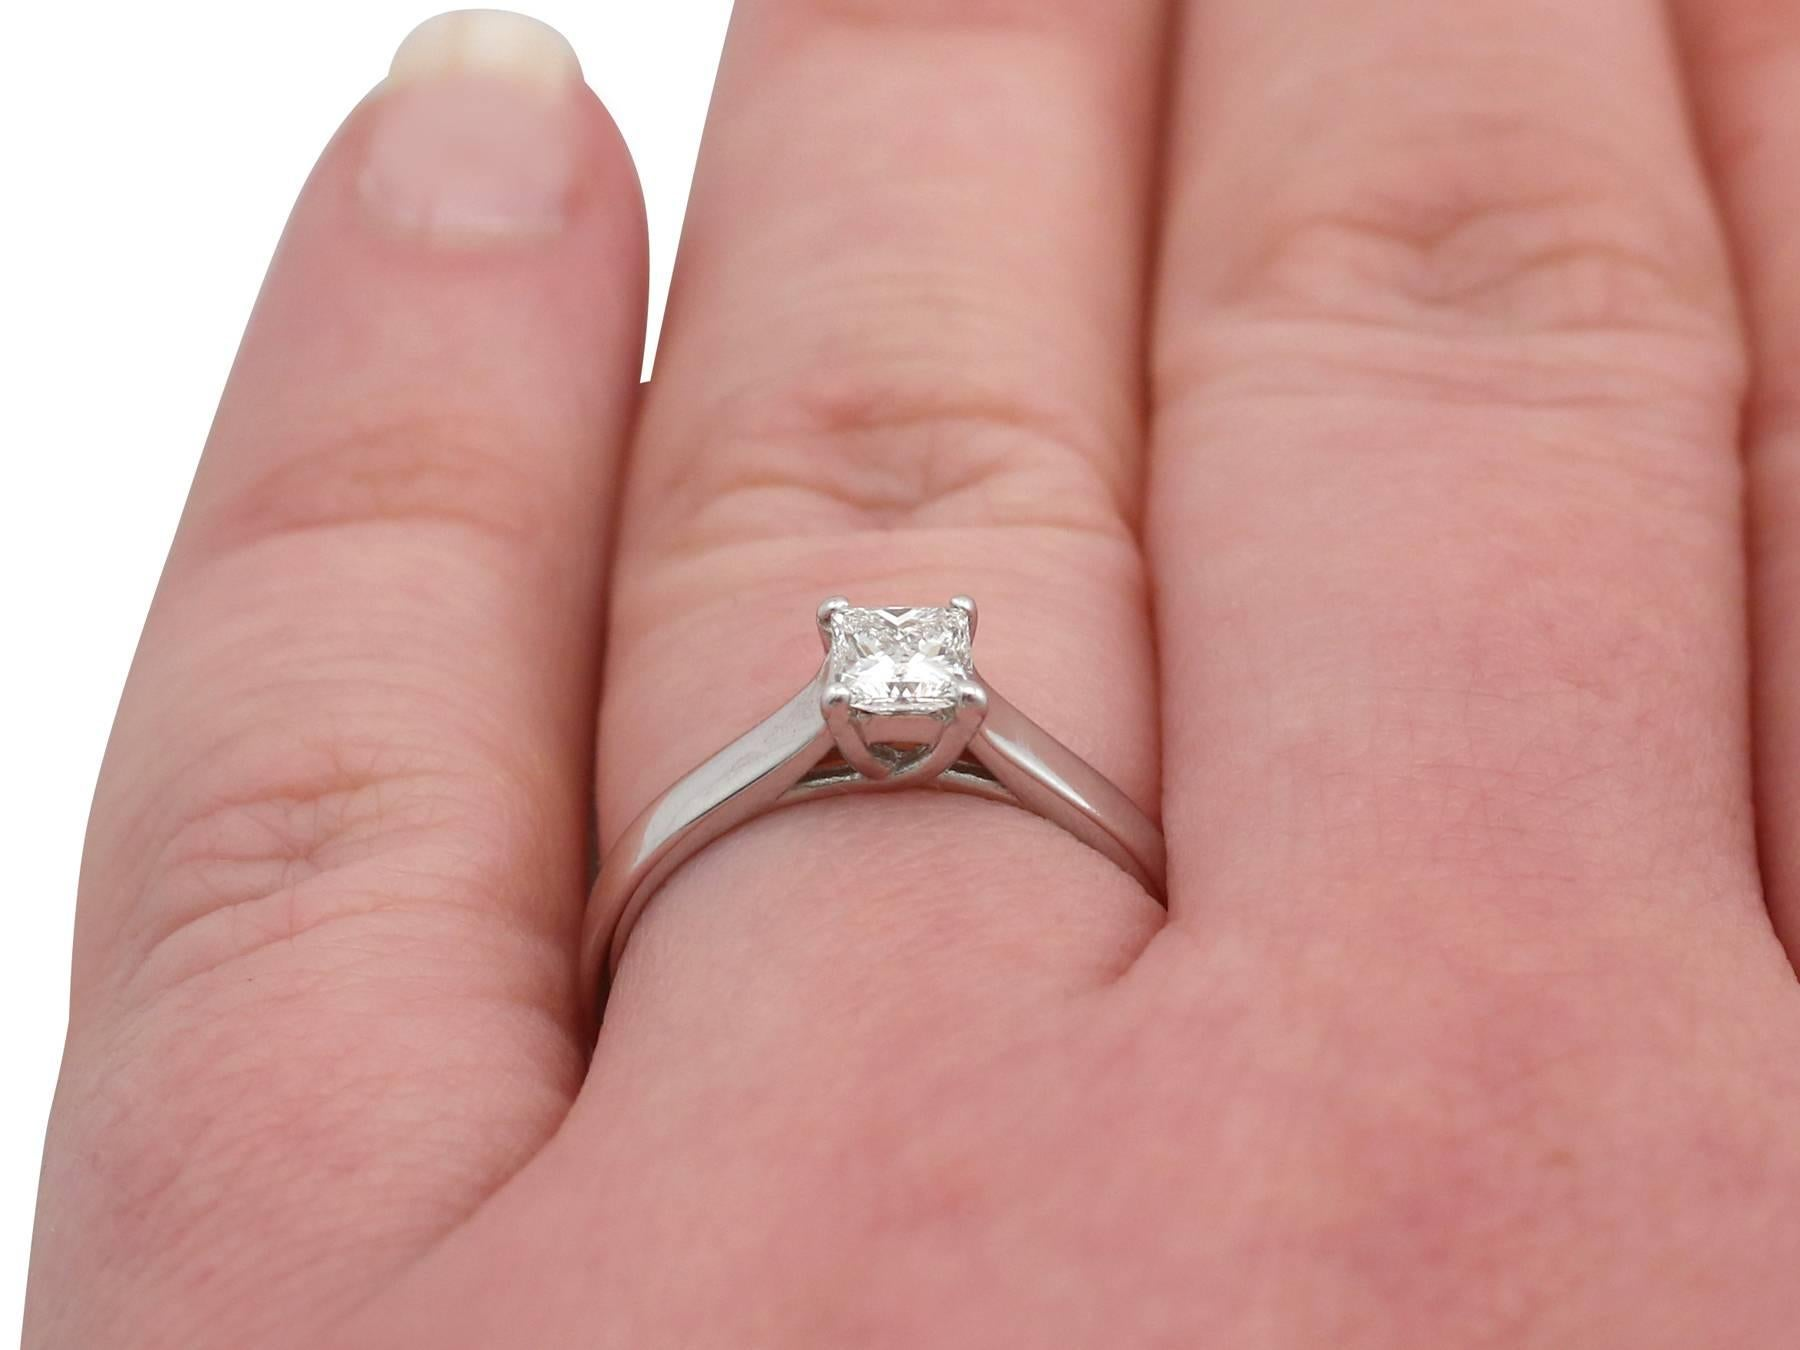 1990s Diamond and 18 Carat White Gold Solitaire Ring For Sale at 1stdibs